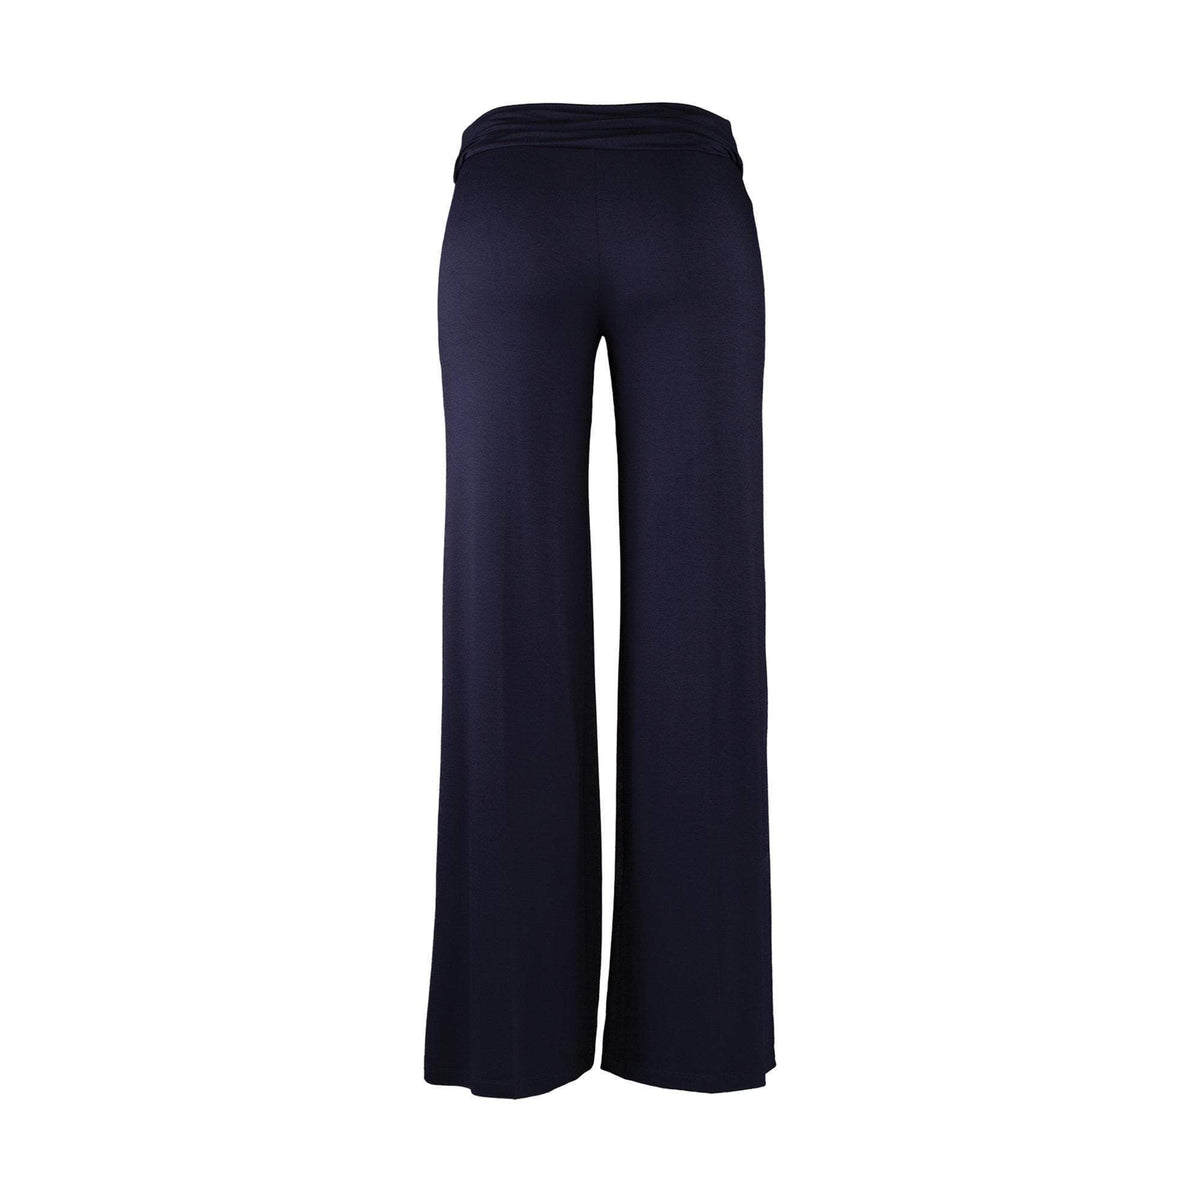 Apparel Jholie London Prima Pant